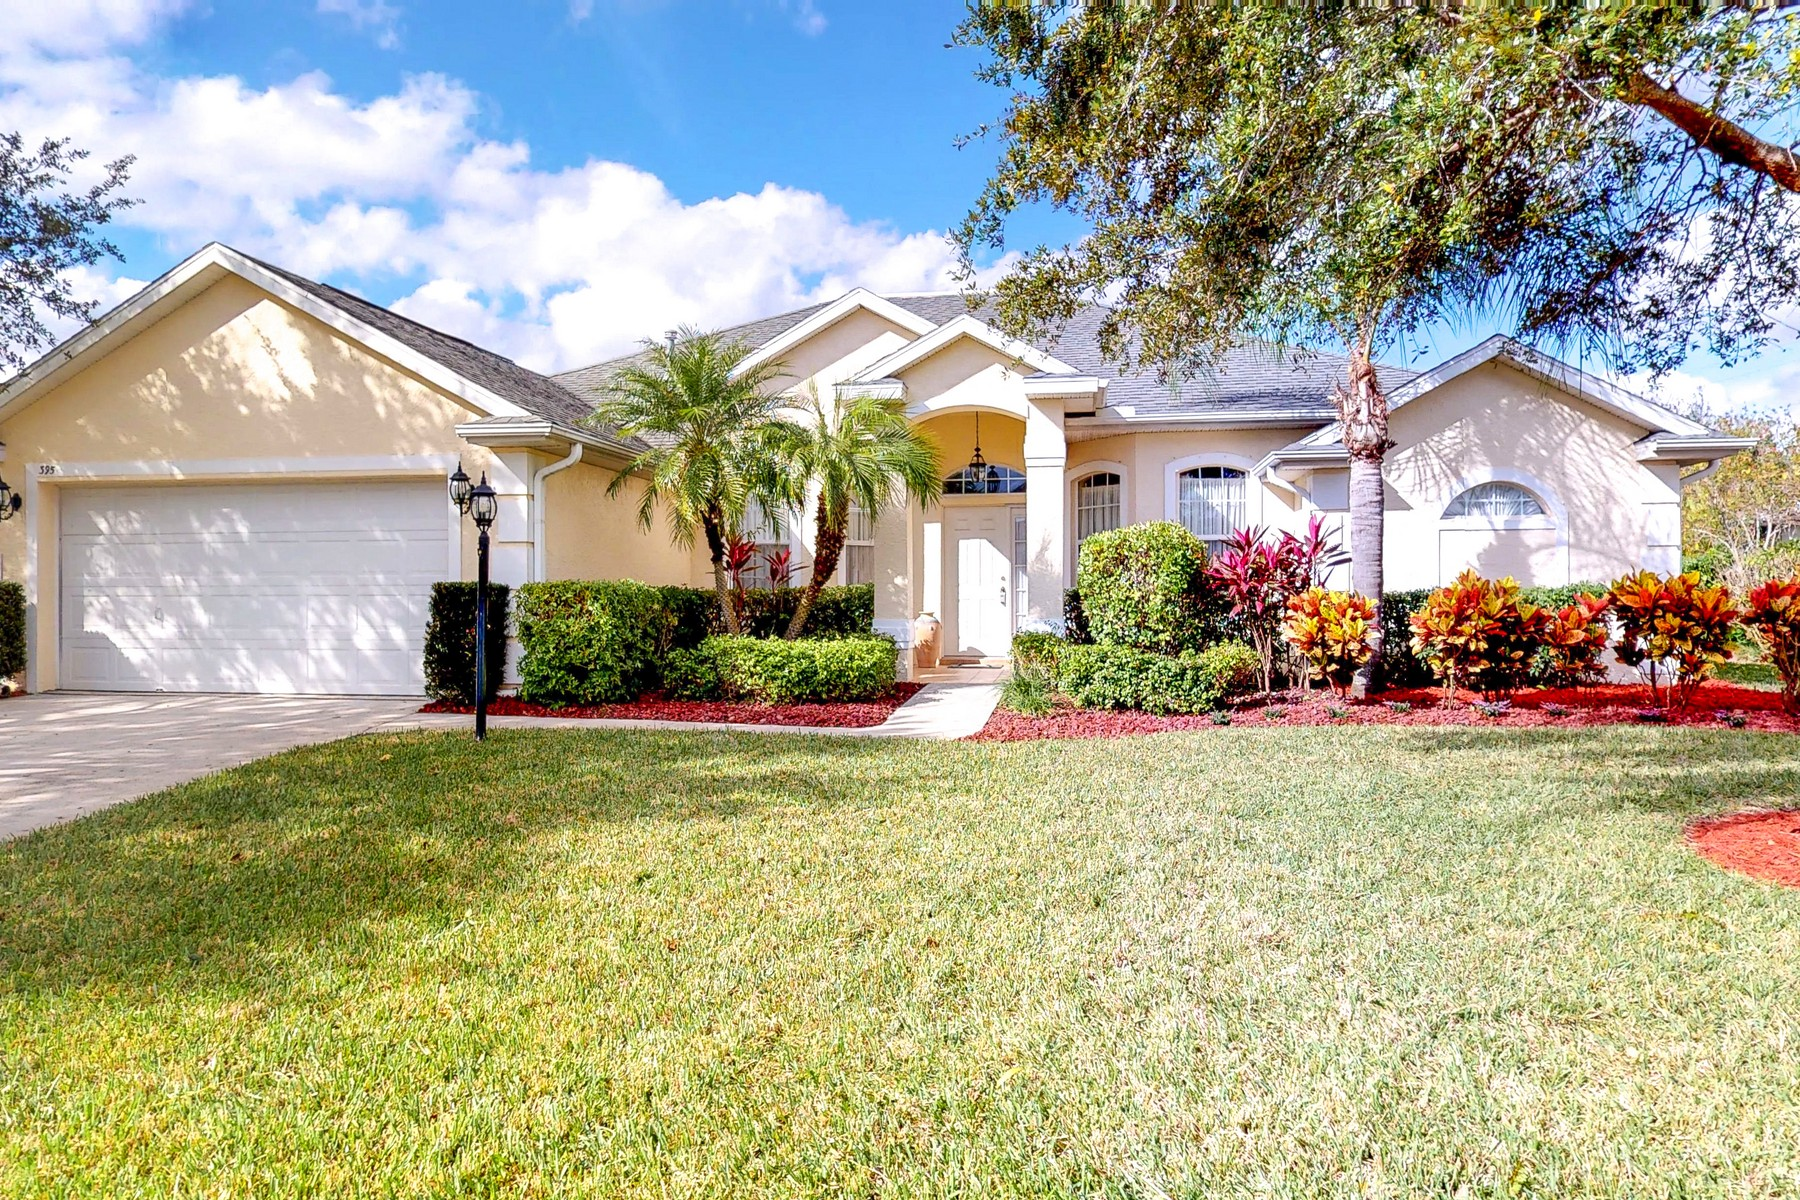 Single Family Home for Sale at Exceptional Opportunity! Pool Home with Space & Privacy! 395 W. Key Lime Square SW Vero Beach, Florida 32968 United States